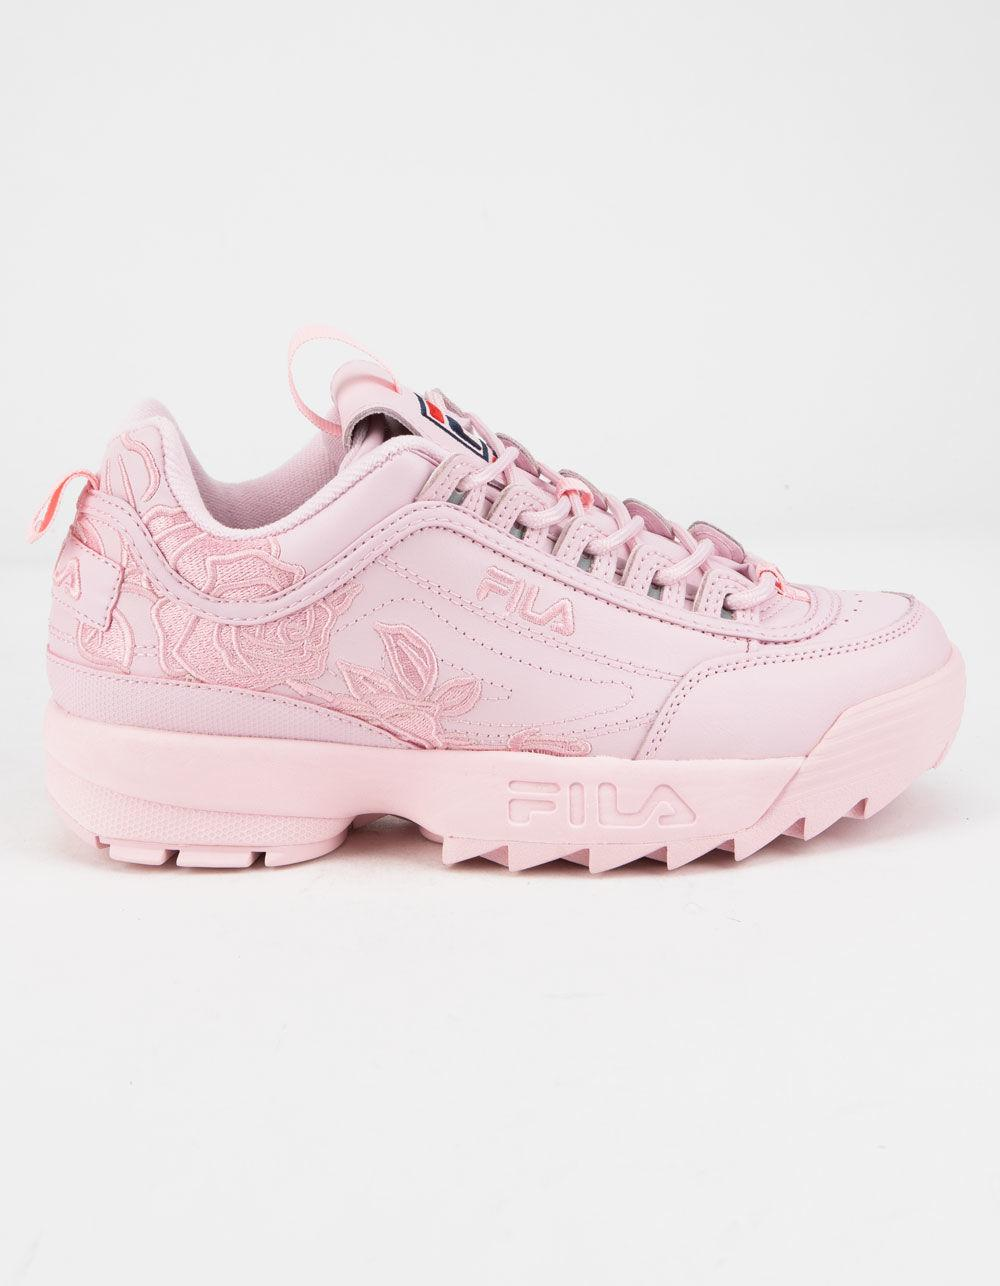 192ec49faf01 Lyst - Fila Disruptor 2 Embroidery Pink Womens Shoes in Pink